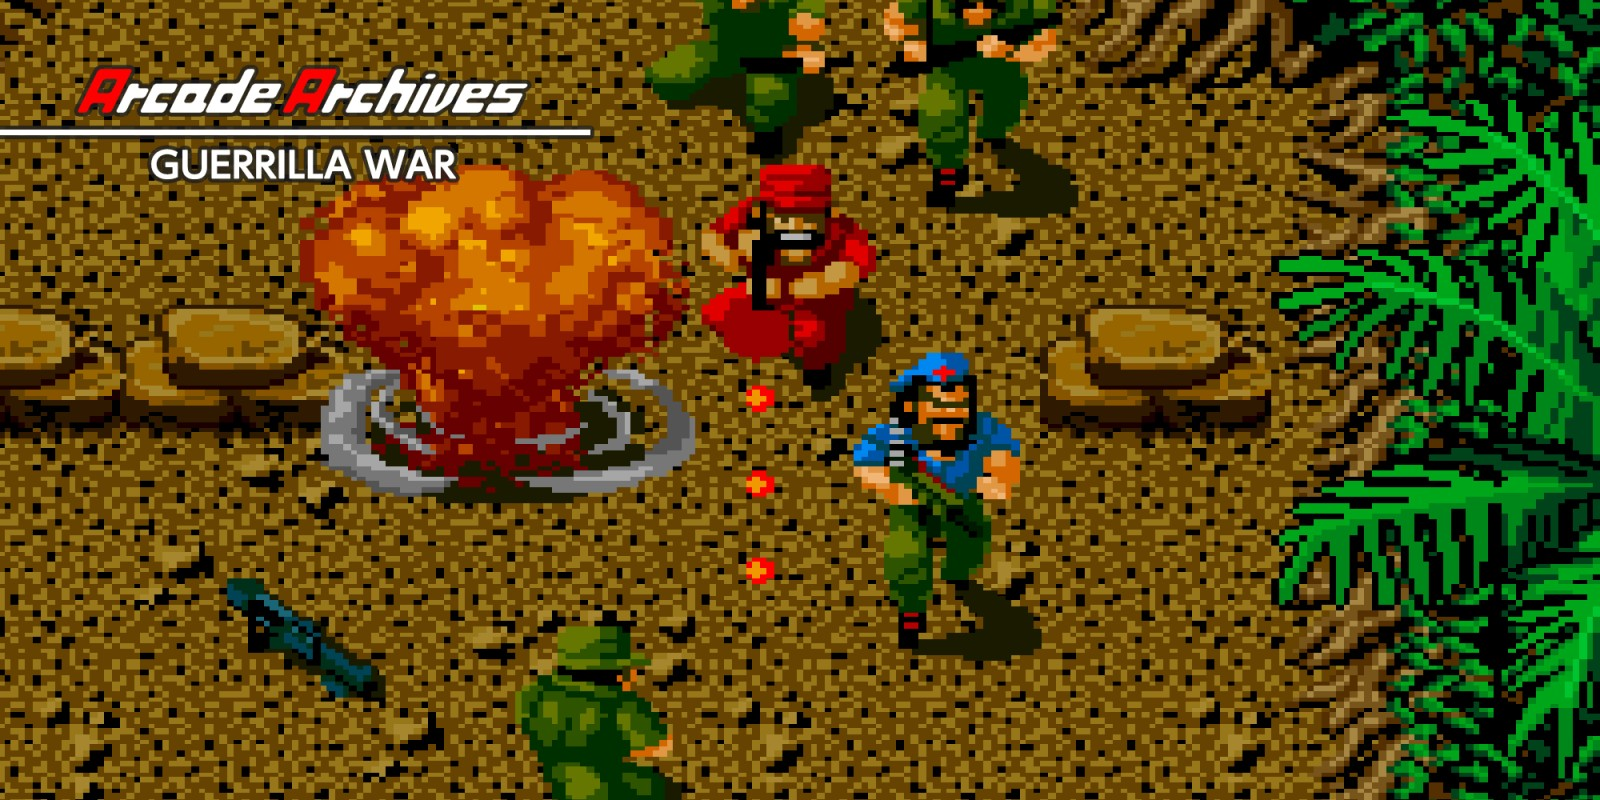 Arcade Archives GUERRILLA WAR